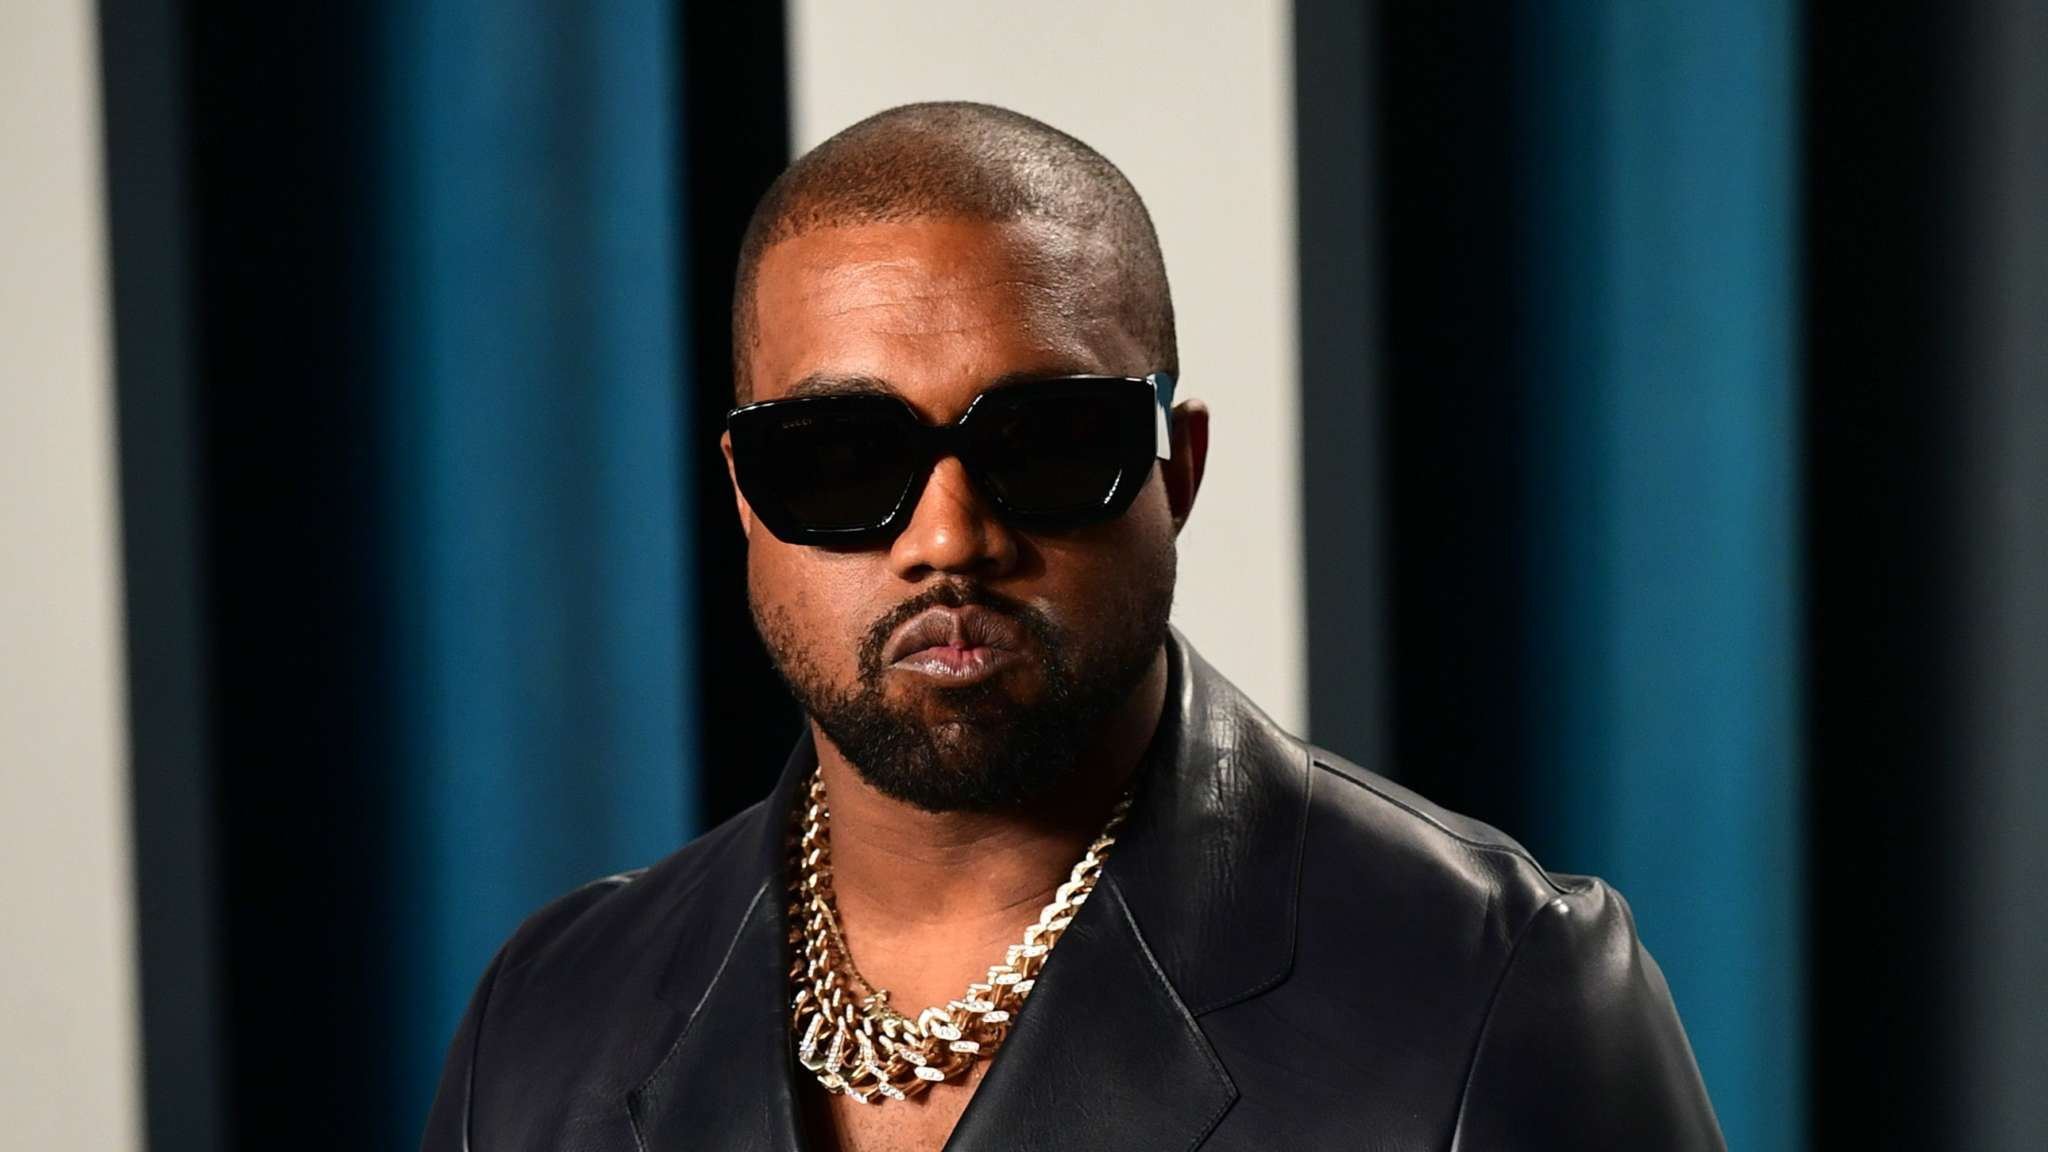 kanye-west-reveals-some-surprising-early-poll-numbers-he-still-plans-to-run-for-president